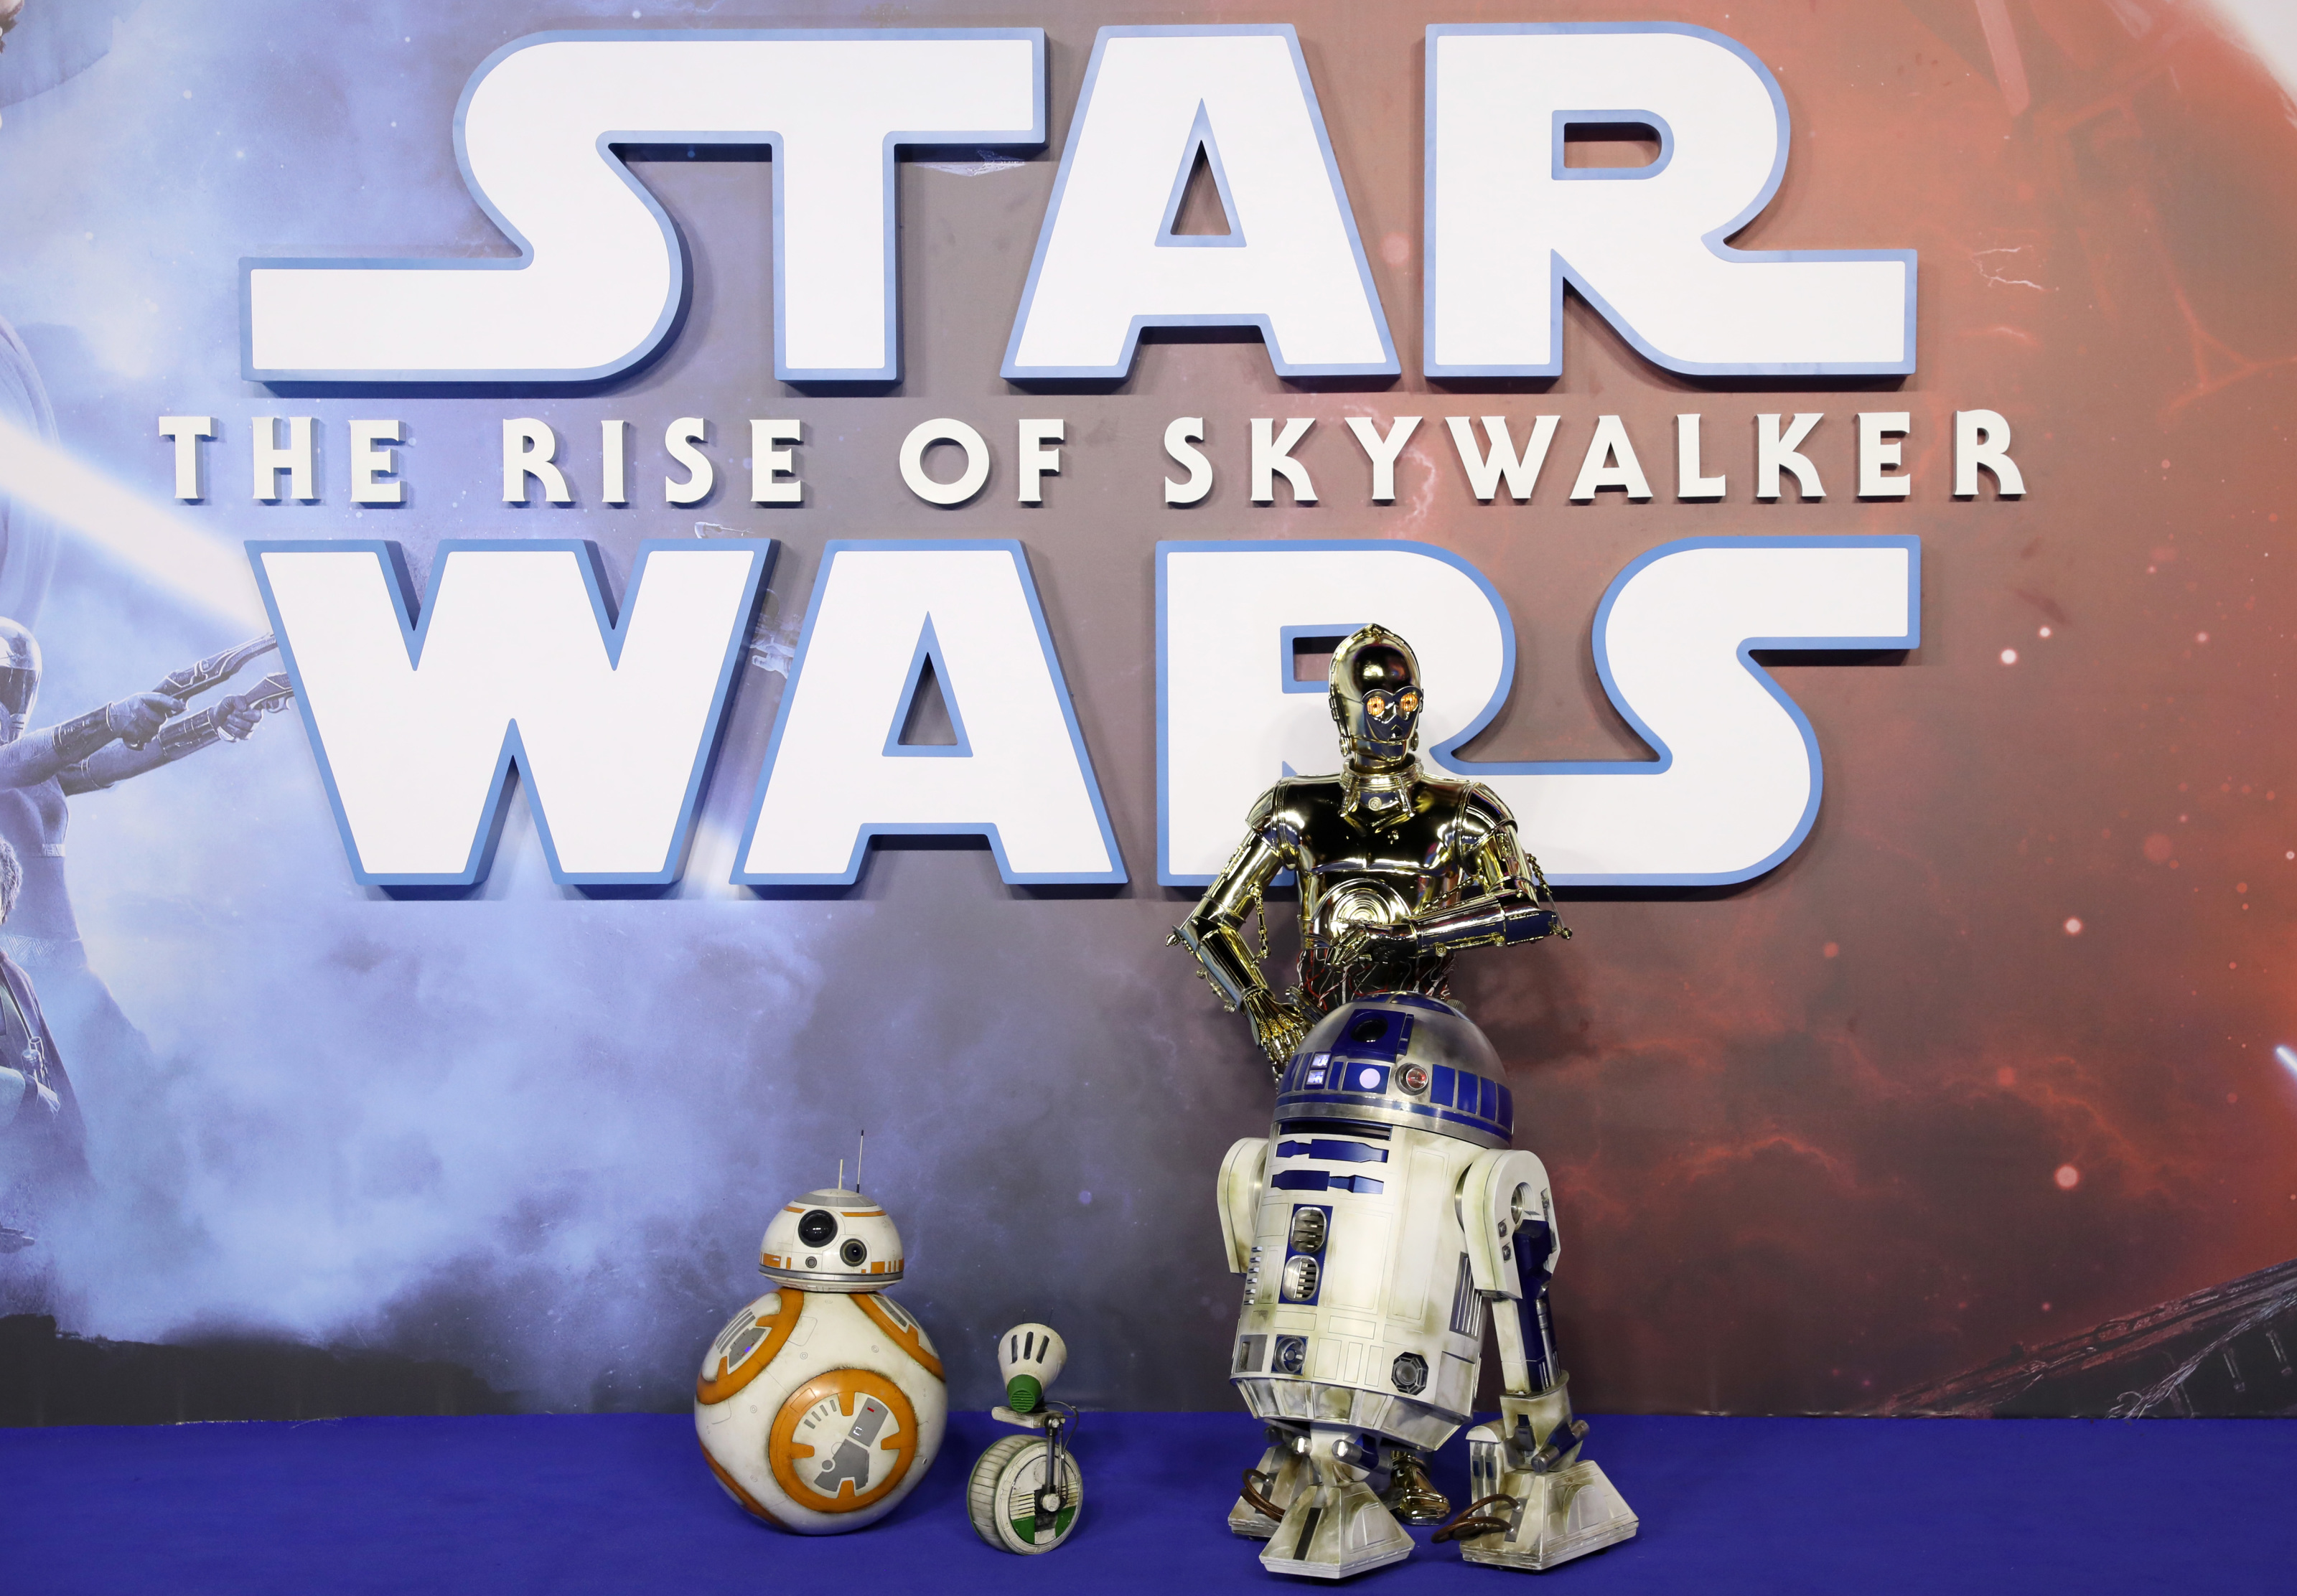 Star Wars: The Rise of Skywalker home media release dates announced